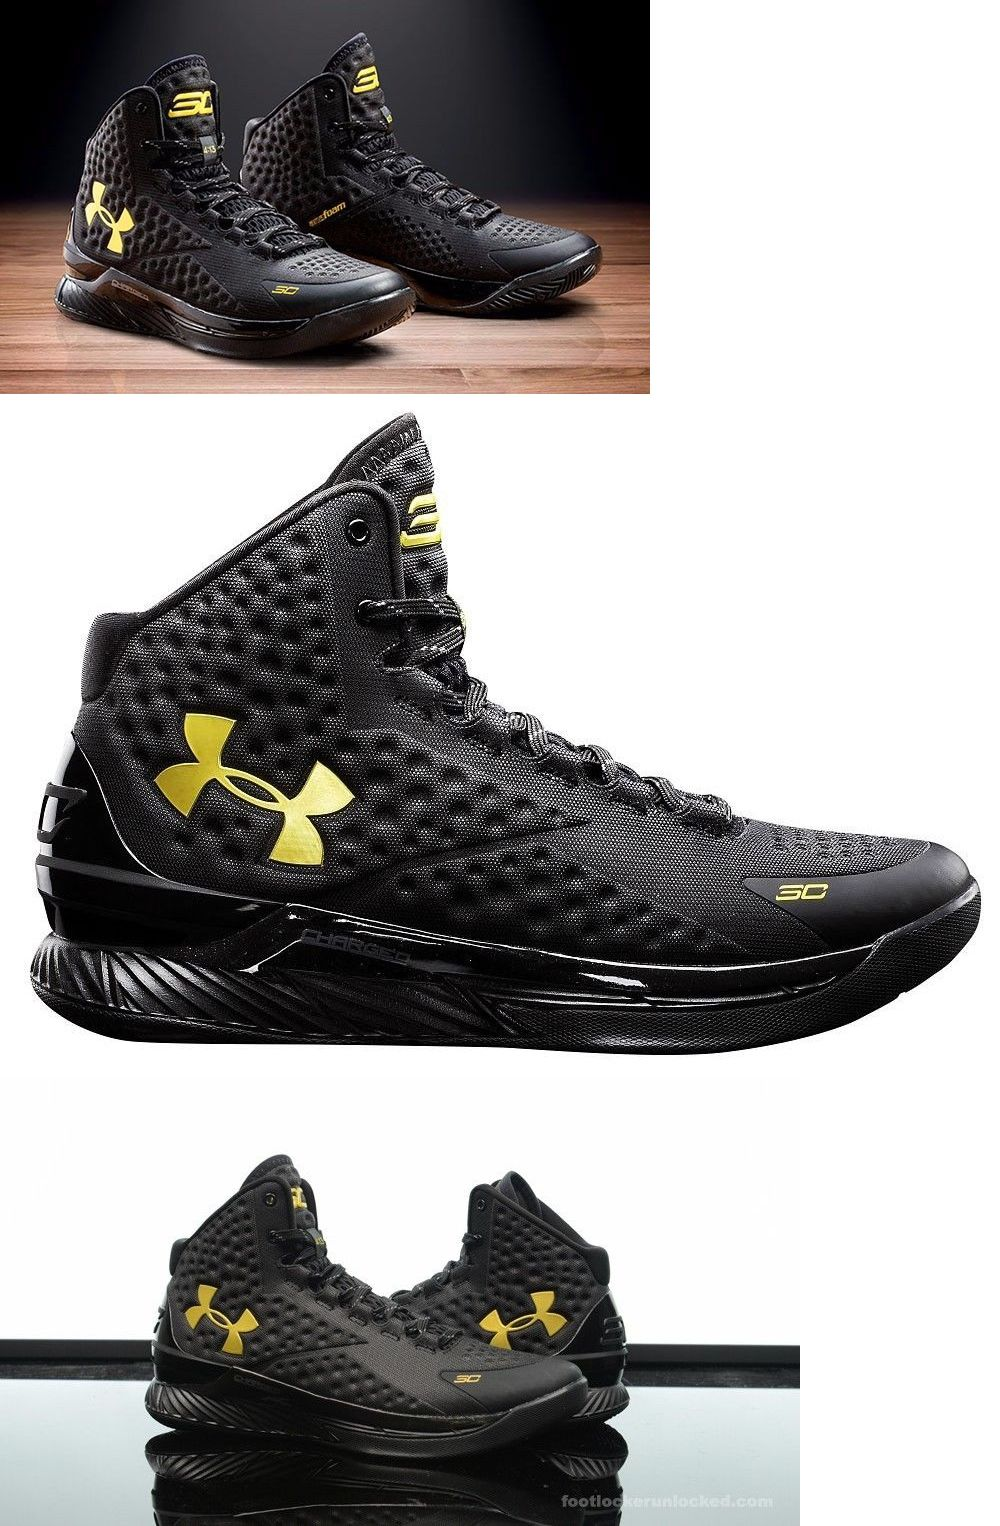 dcba5c507d0f ... shoes nike black blue zoom lebron st ii 15218 bad79  shopping men  158971 under armour curry 1 blackout basketball shoe size 11 buy it 375cd  5e112